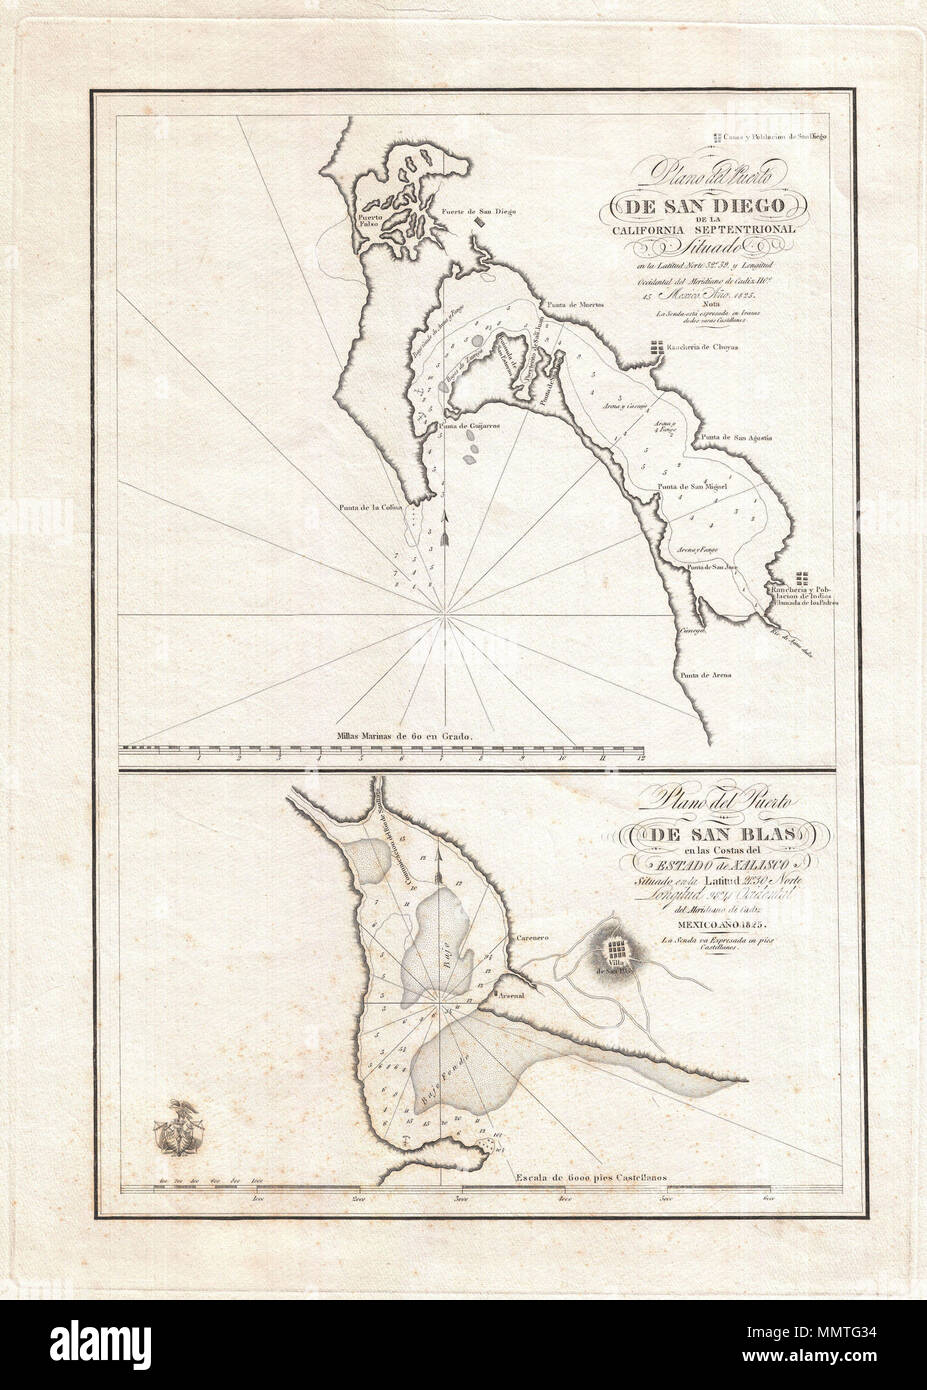 Missions In Southern California Map.English This Is An Exceptionally Rare And Early Map Of San Diego